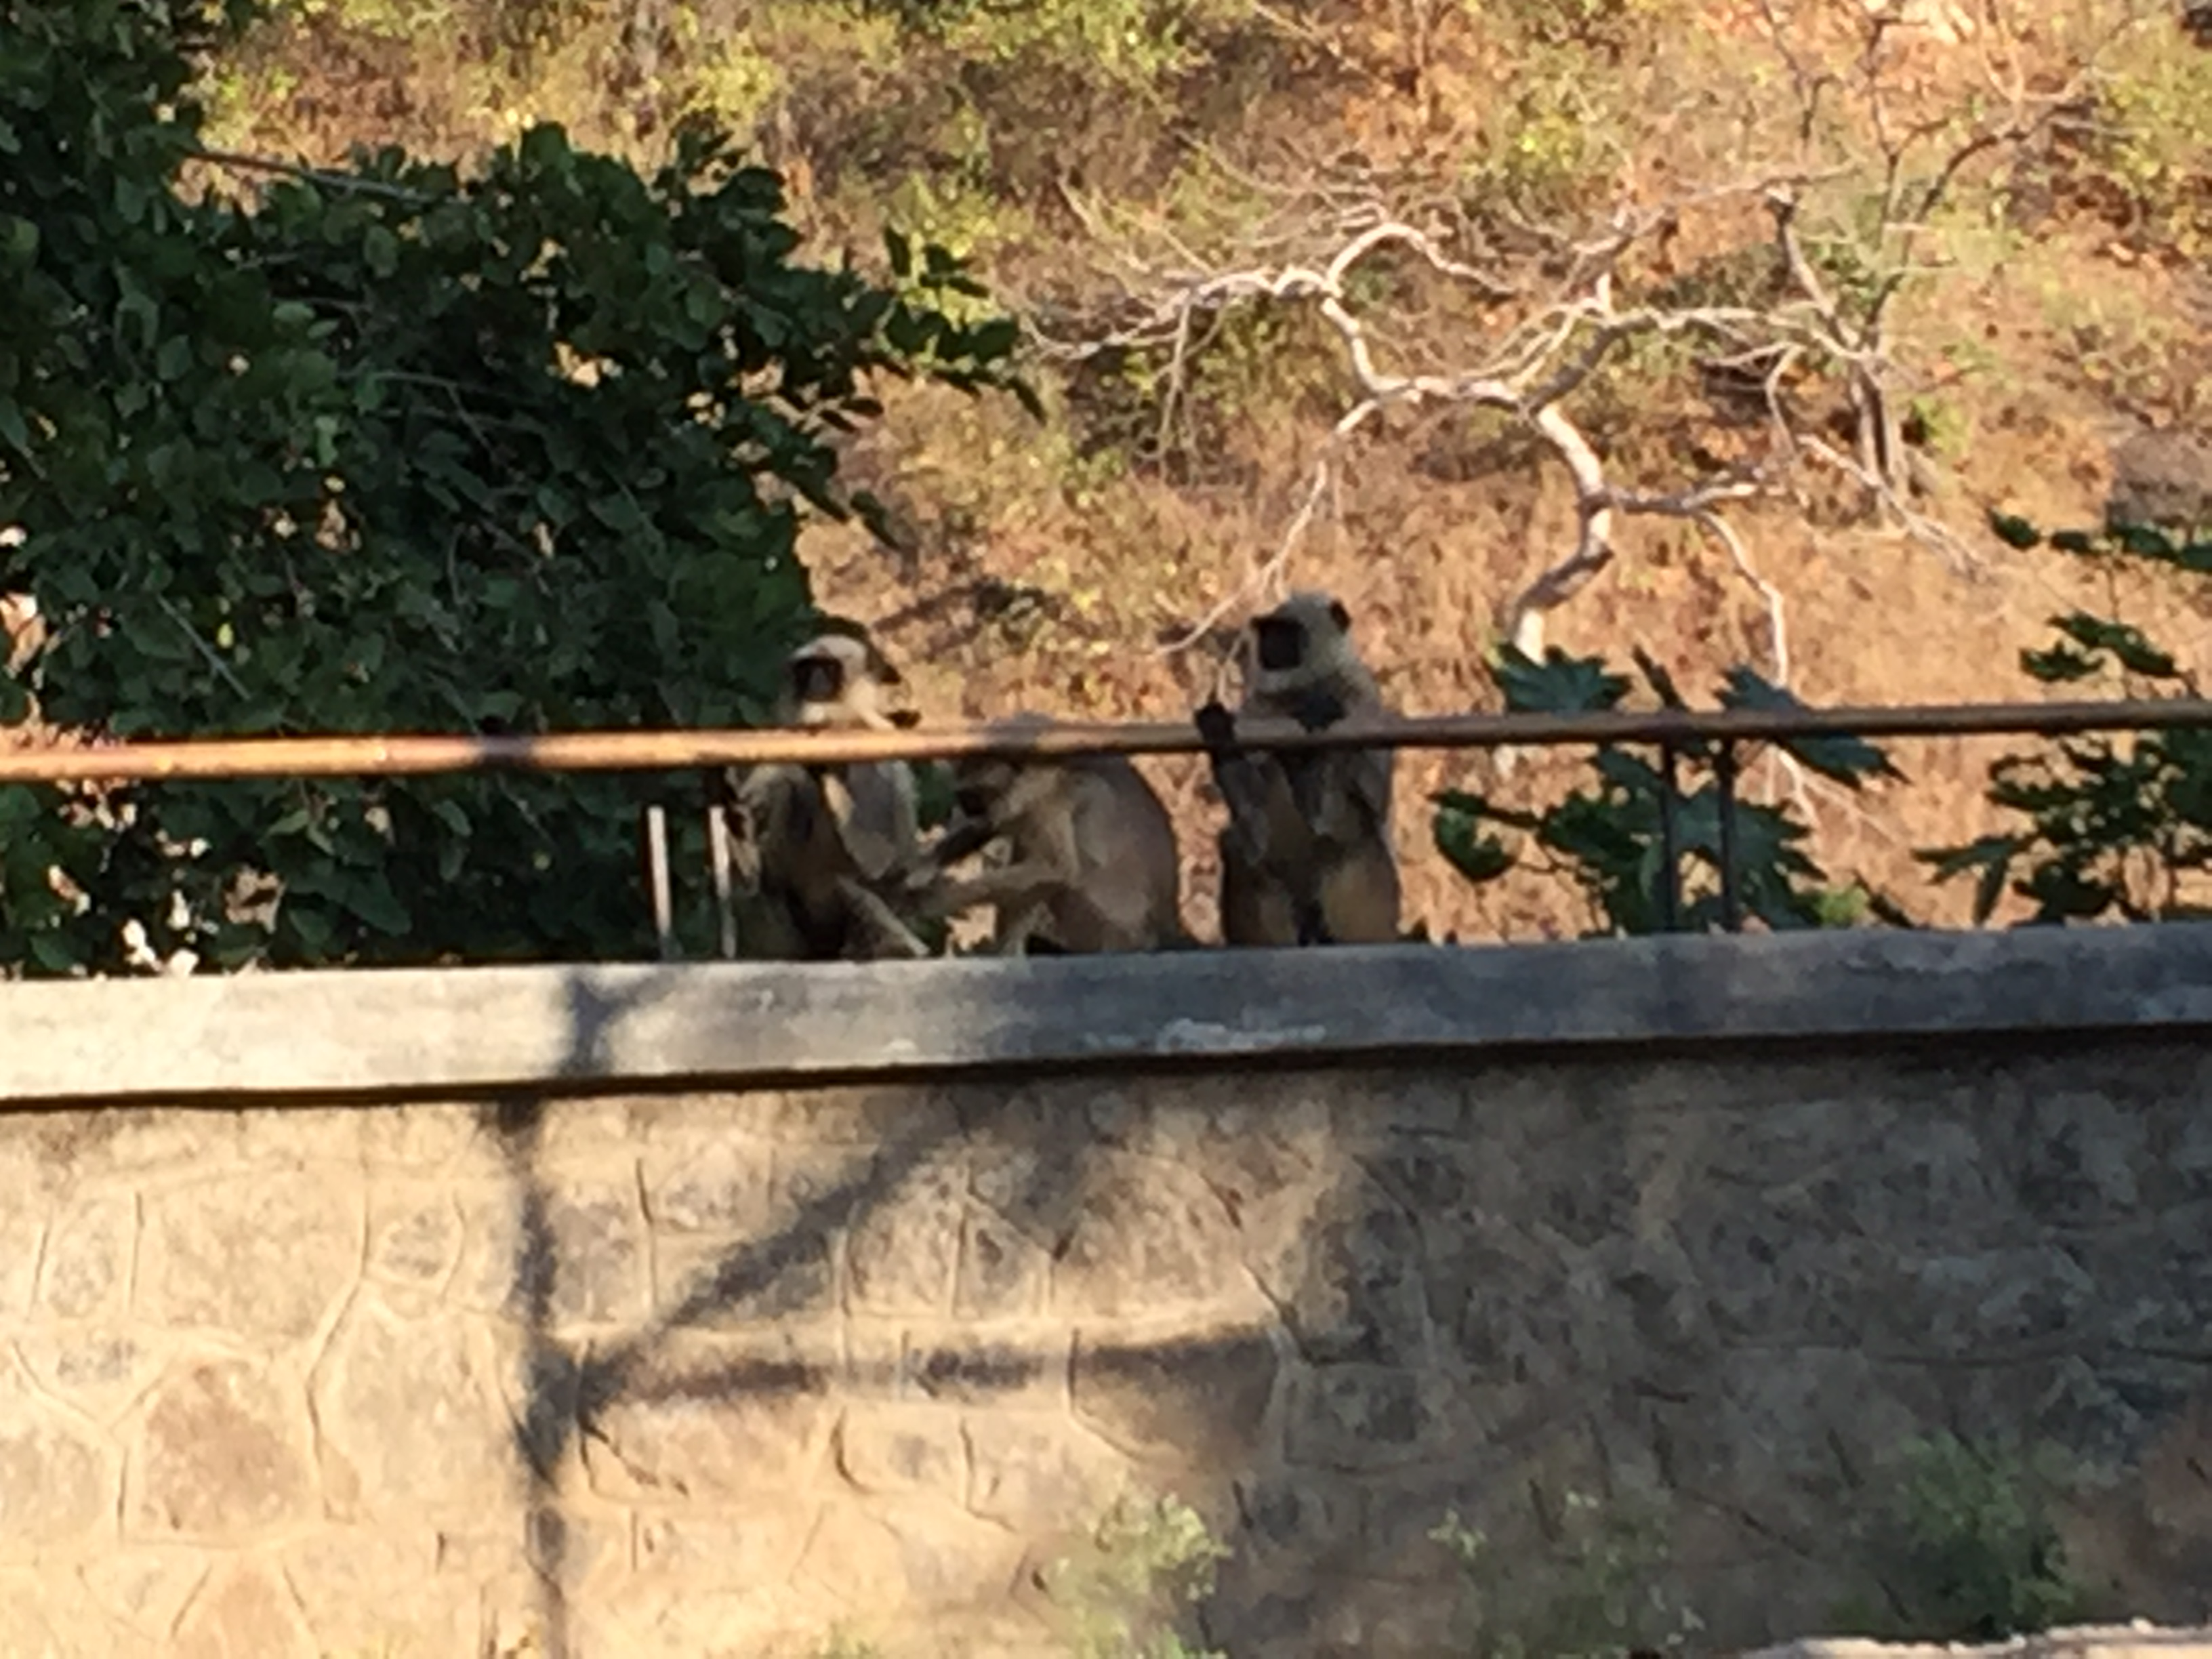 Monkeys hanging out